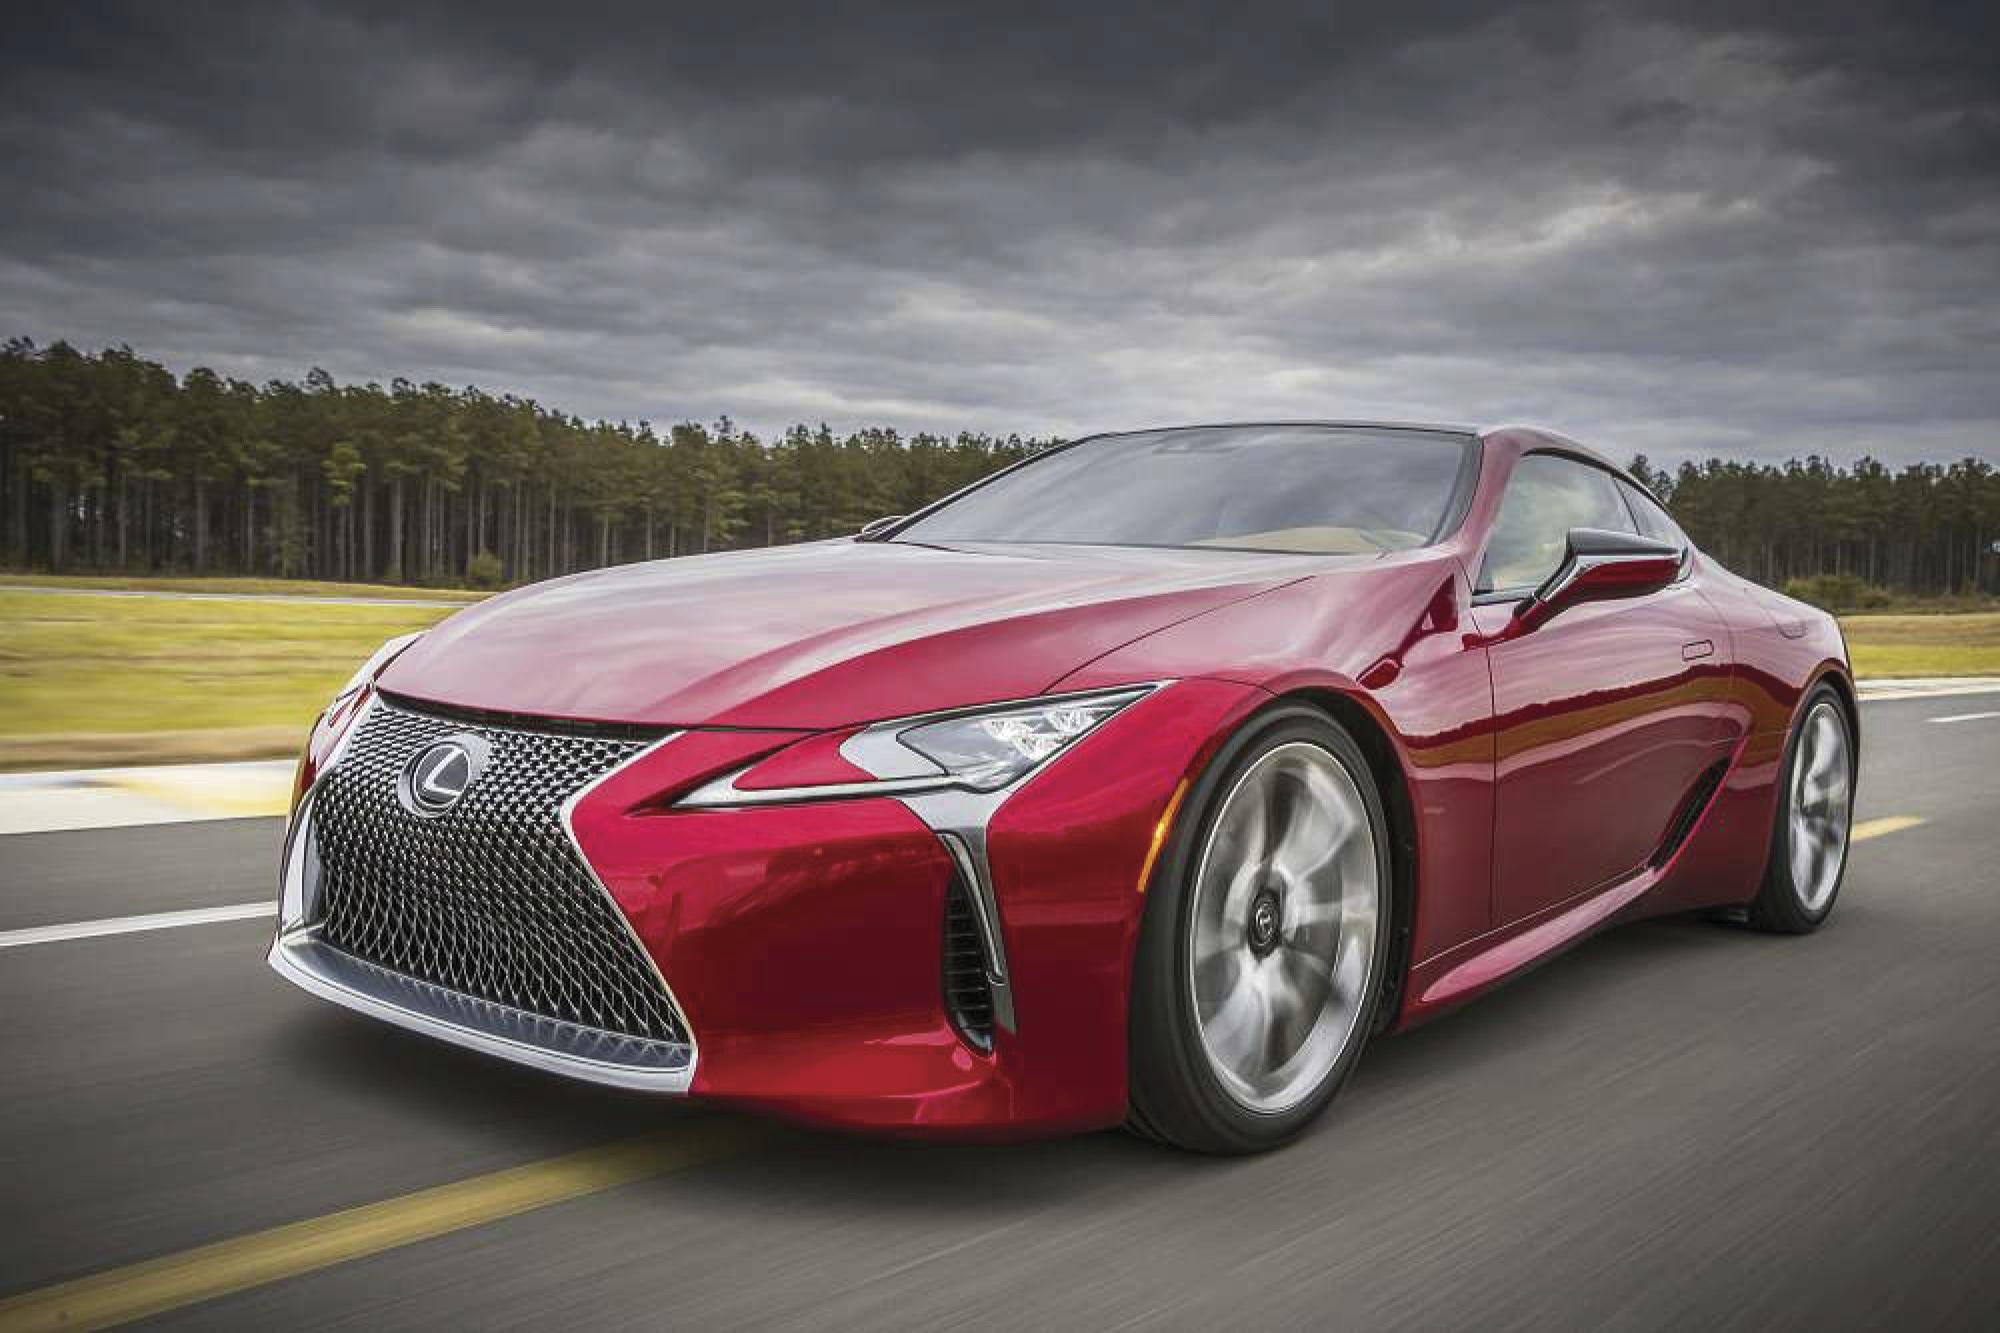 Fast and luxurious: Lexus LC 500 is 2018's Car of Texas